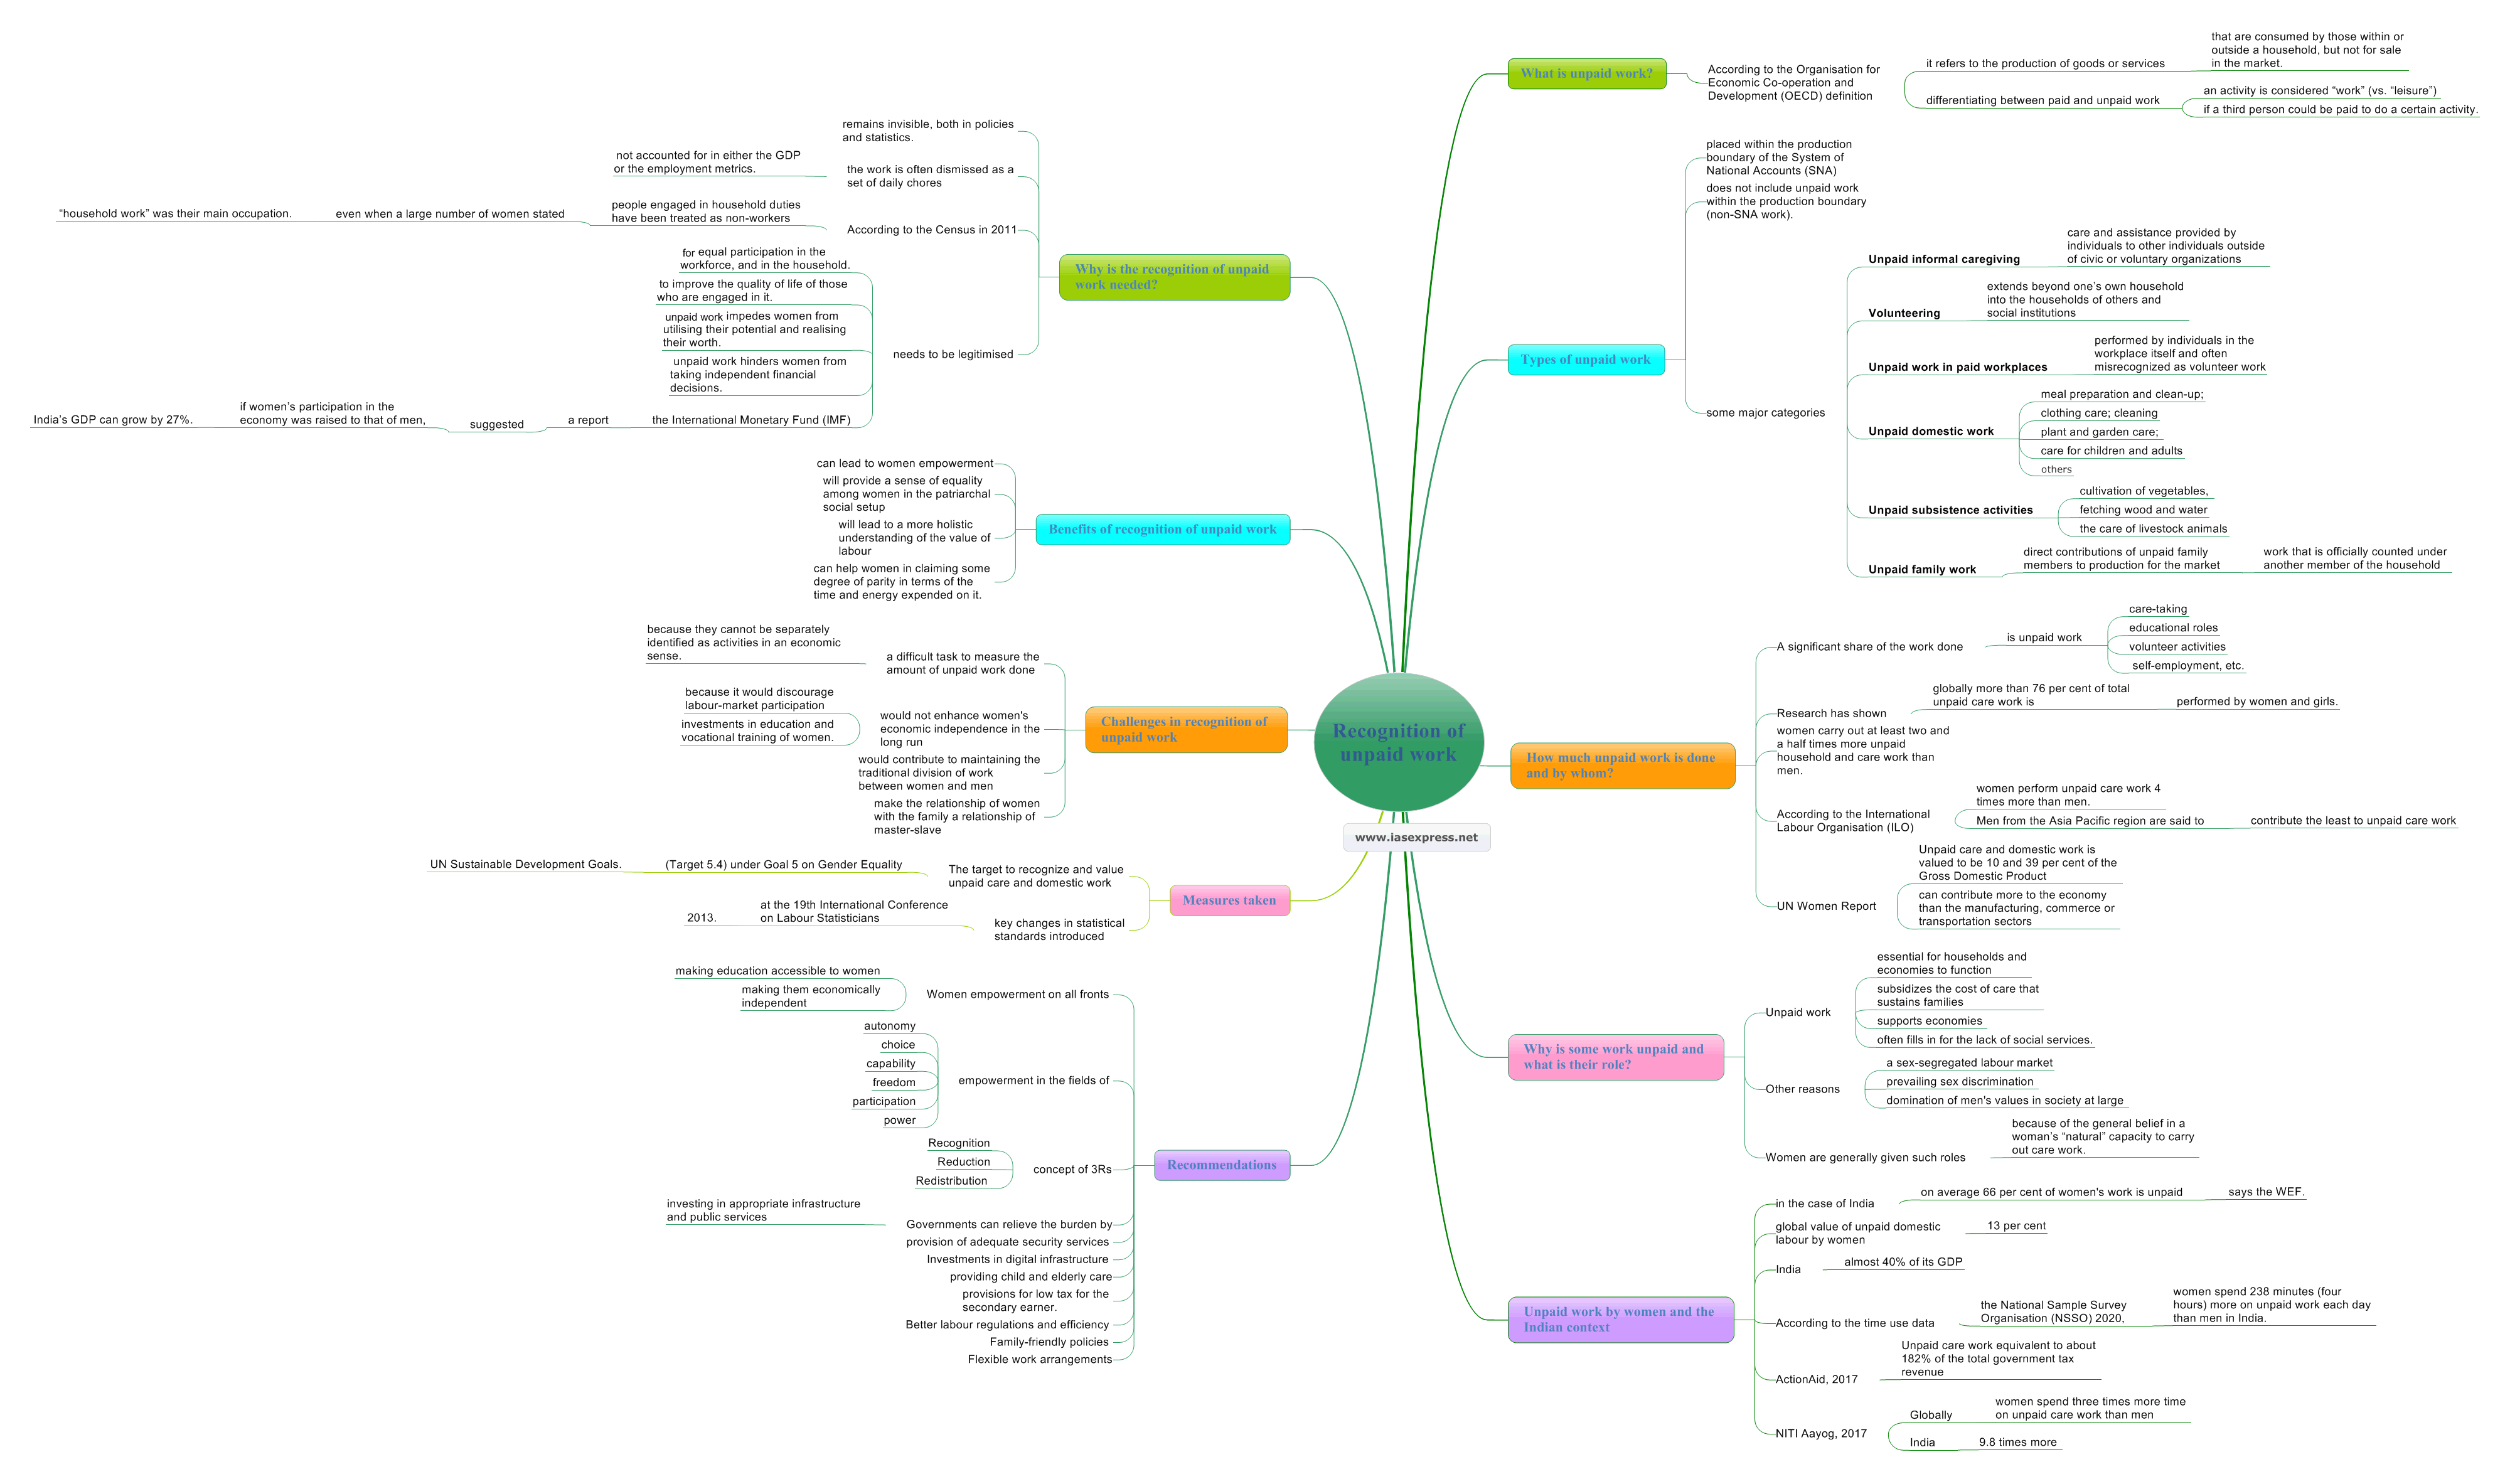 Recognition-of-unpaid-work mindmap